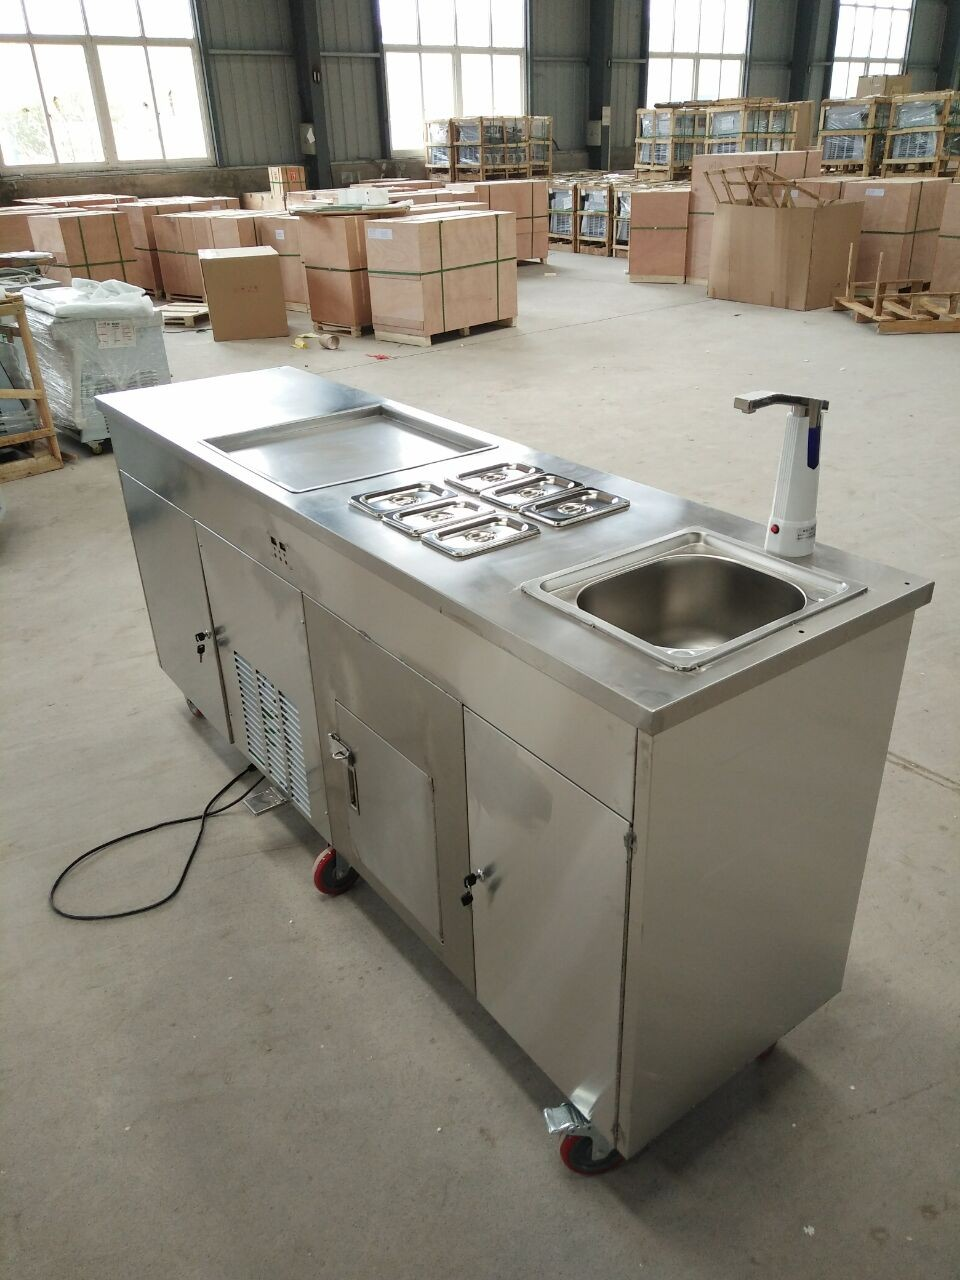 HTB1c9m SSzqK1RjSZFLq6An2XXau - 2019 New style Single Round Pan With sink and refrigerator  business fried  ice cream rolls machine